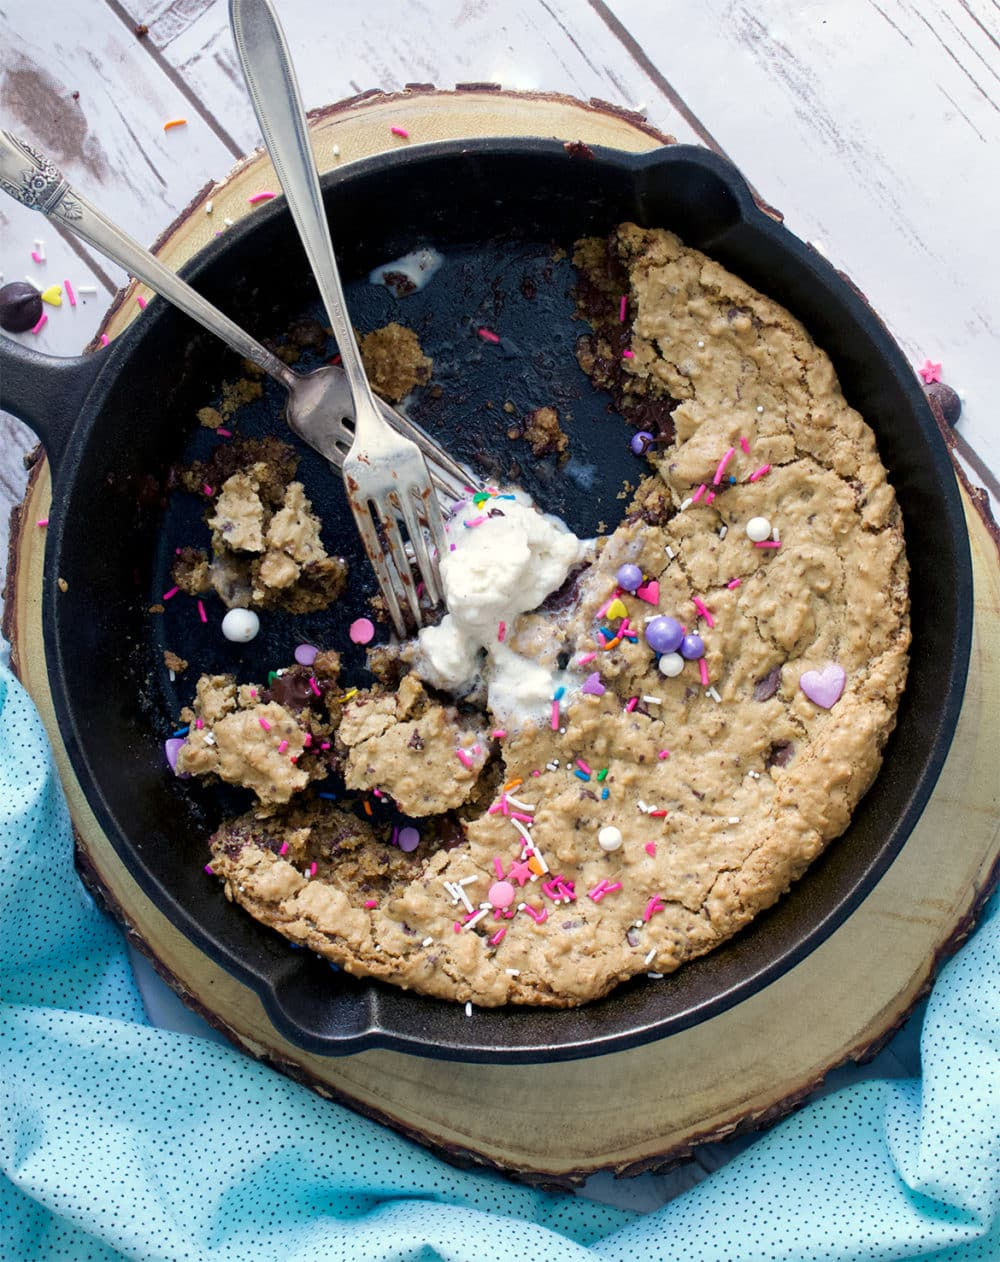 A half eaten skillet cookie with chocolate chips and oatmeal, ice cream and sprinkles.